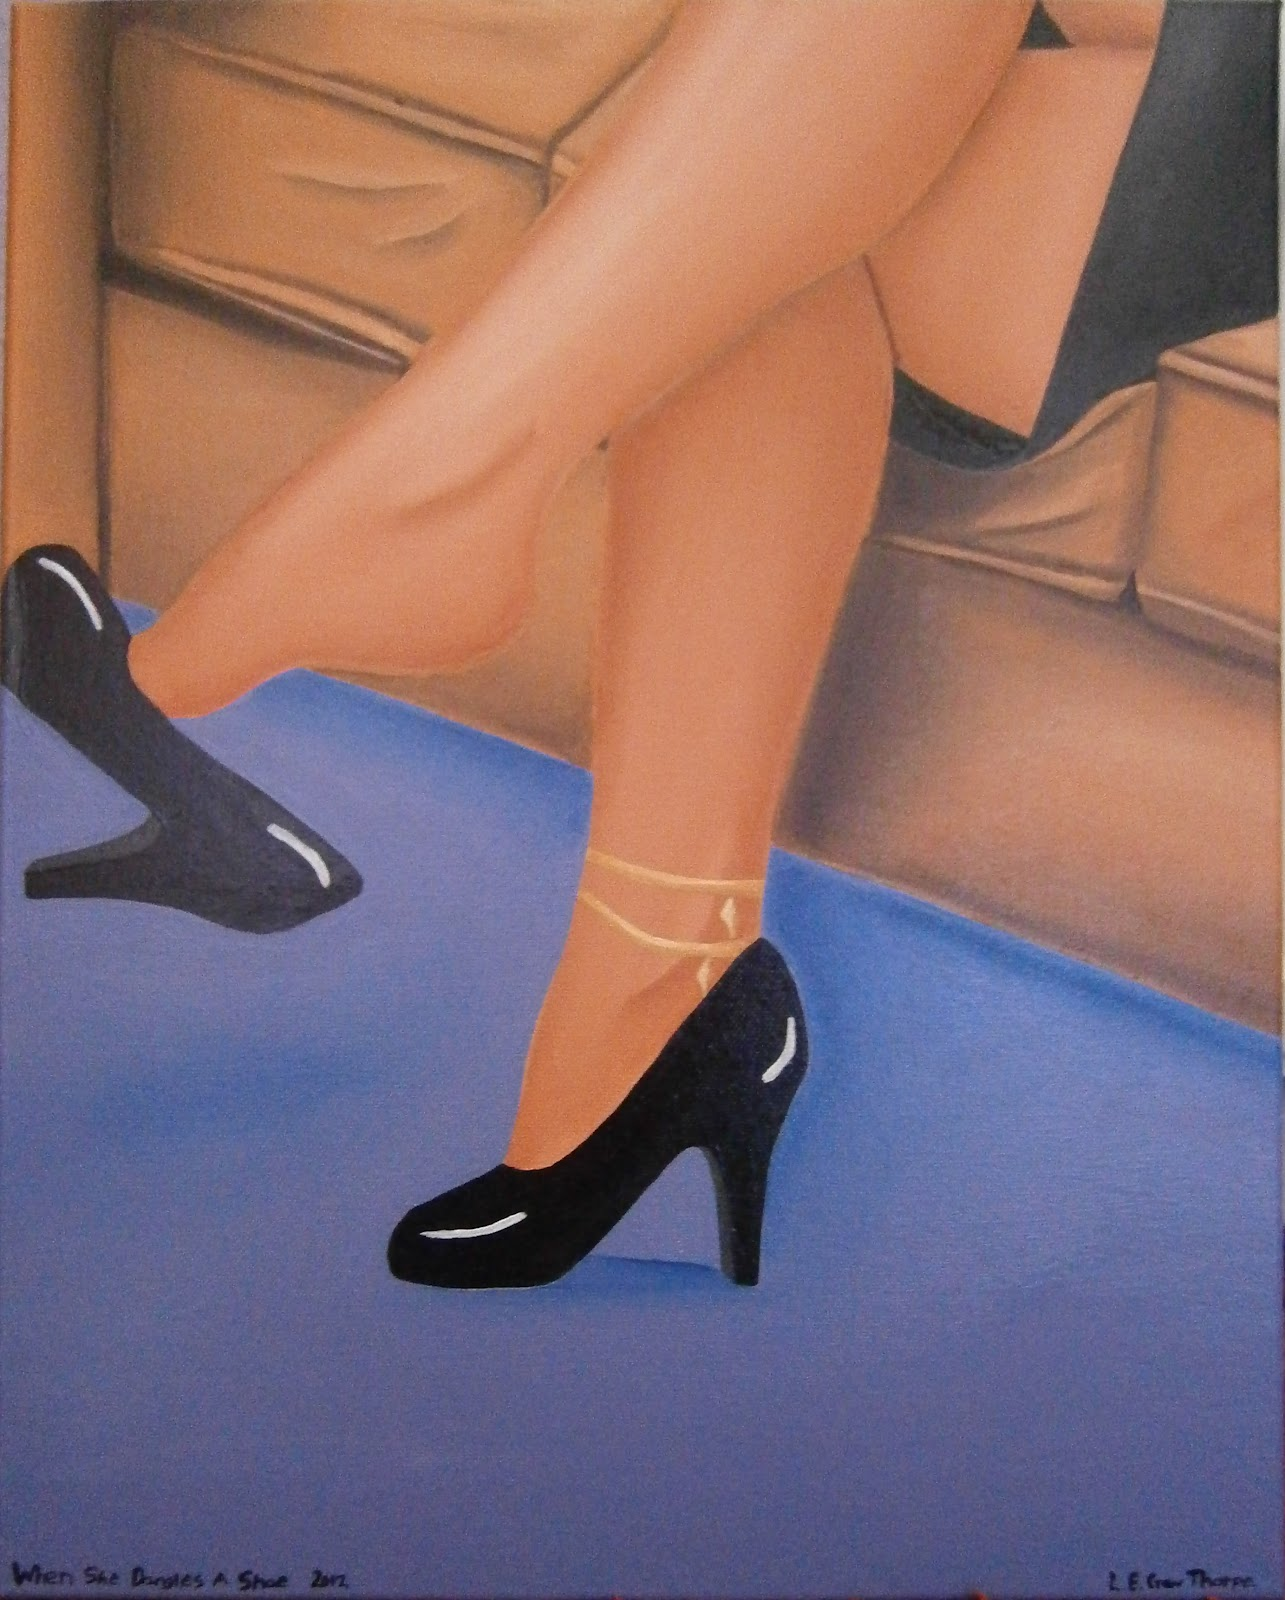 A girl sitting on a couch with her legs crossed dangling a shoe